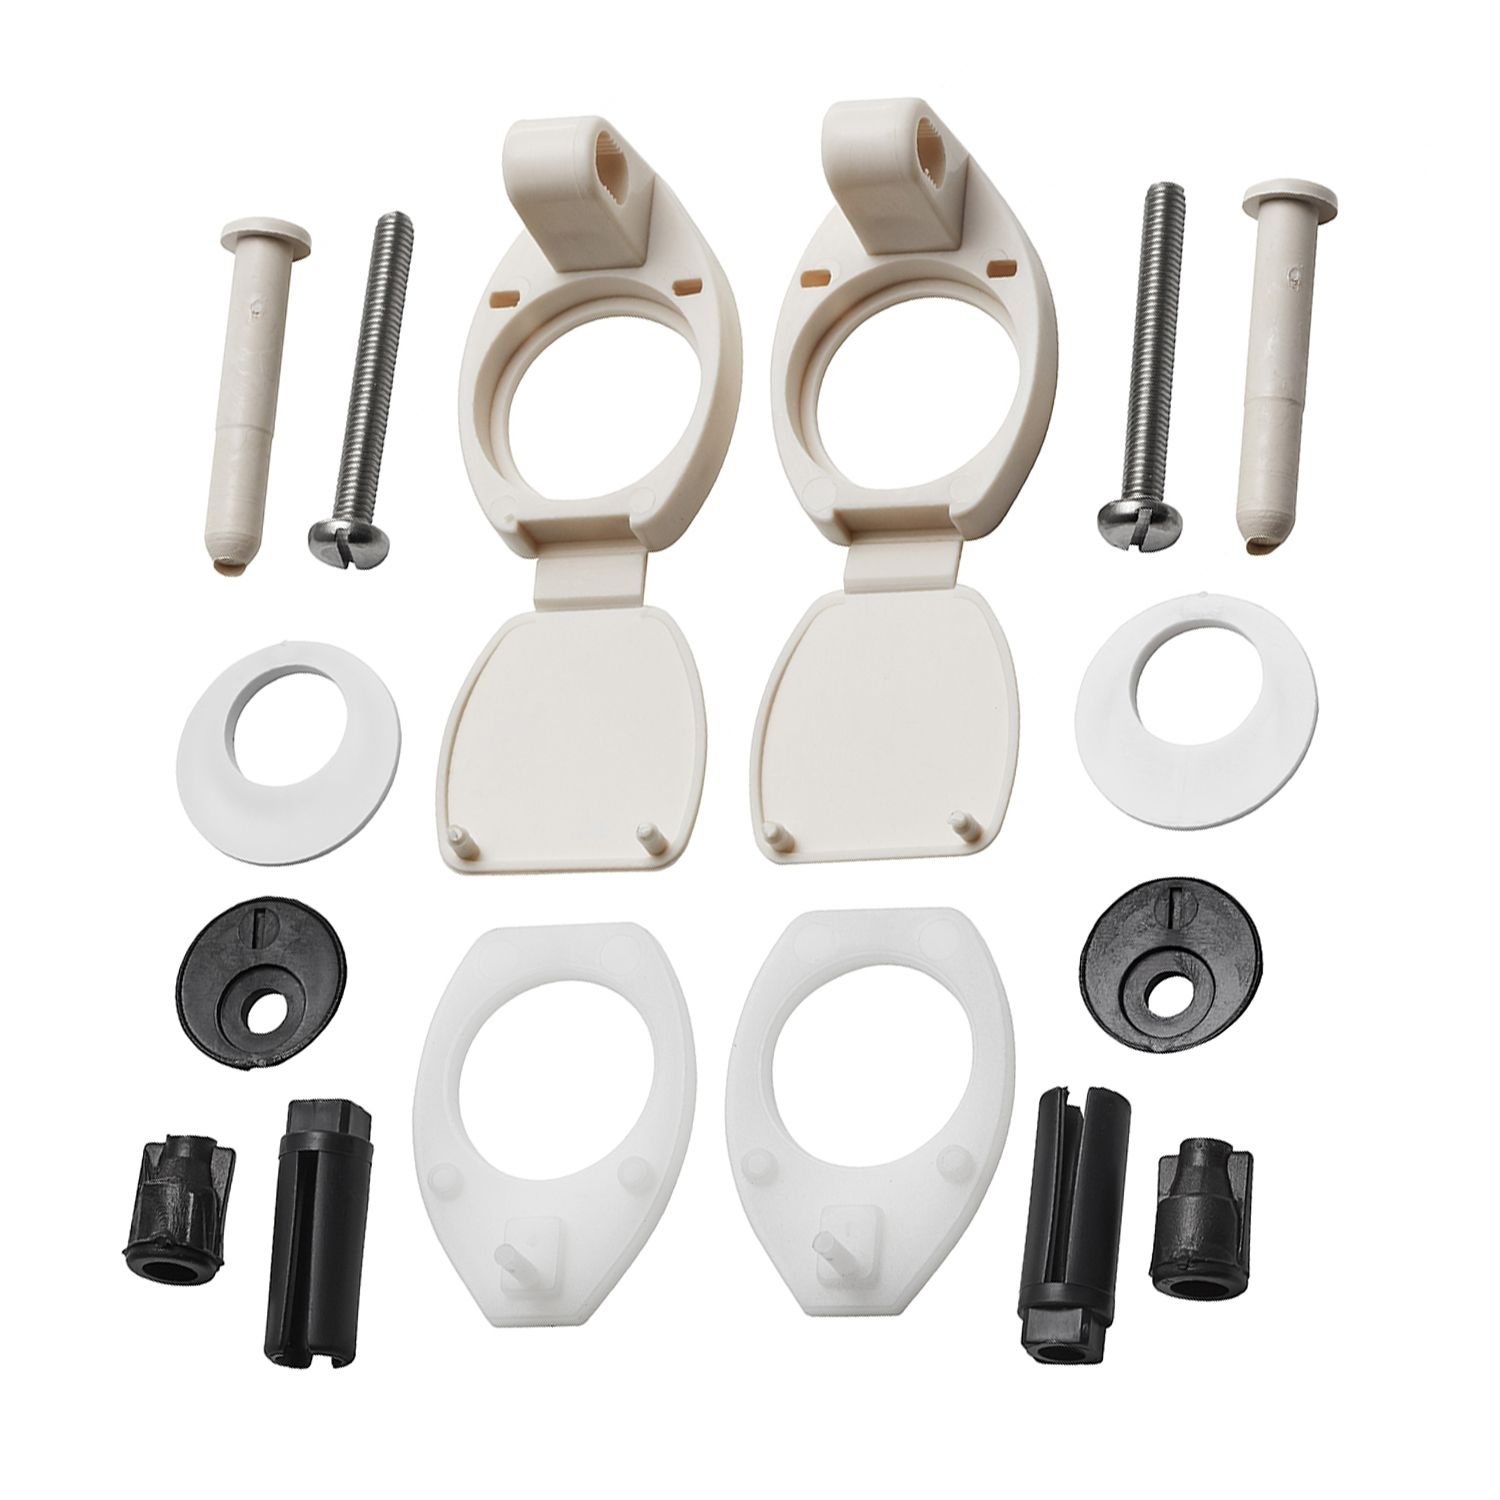 Armitage Shanks Orion Seat Hinges Pillars Included Chablis S972720